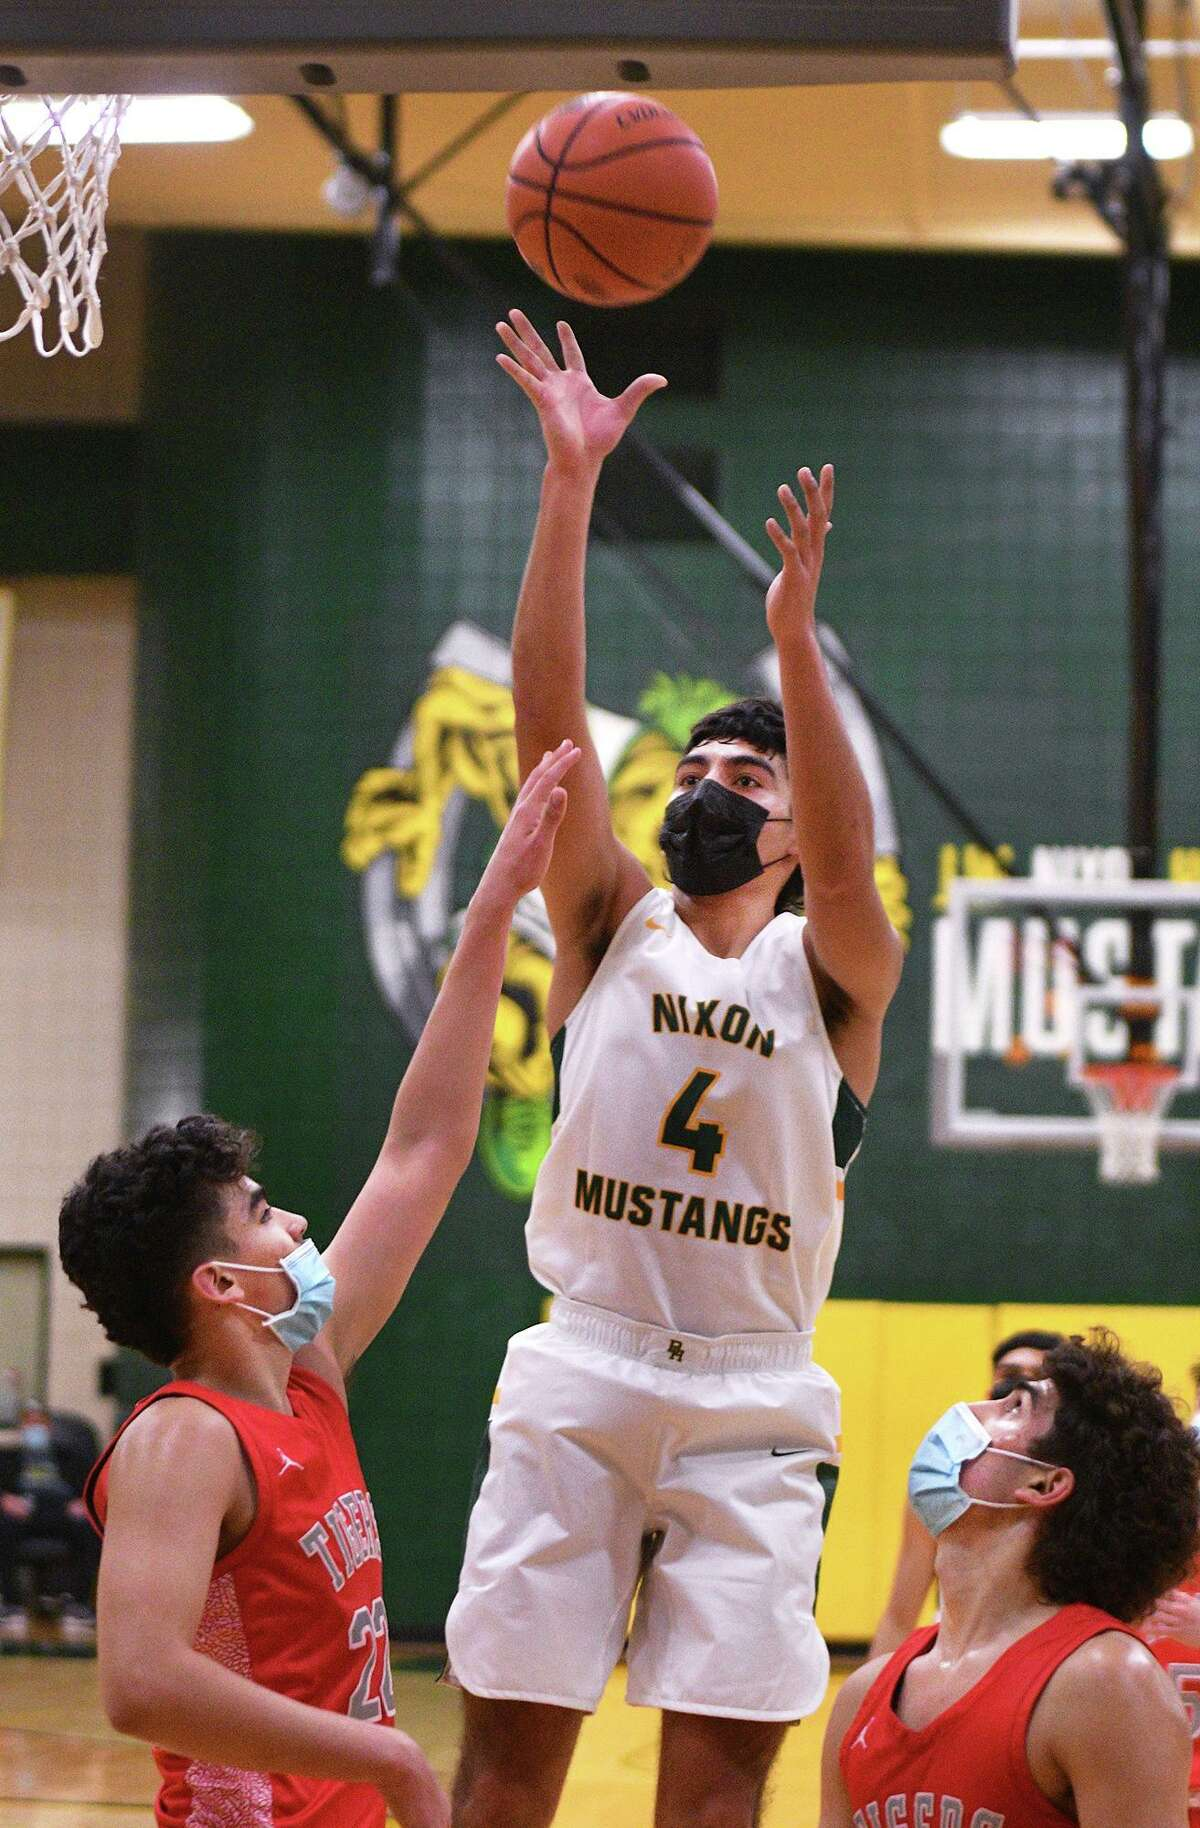 Juan Marines is one of three Nixon players who are 6-foot-2 or taller.